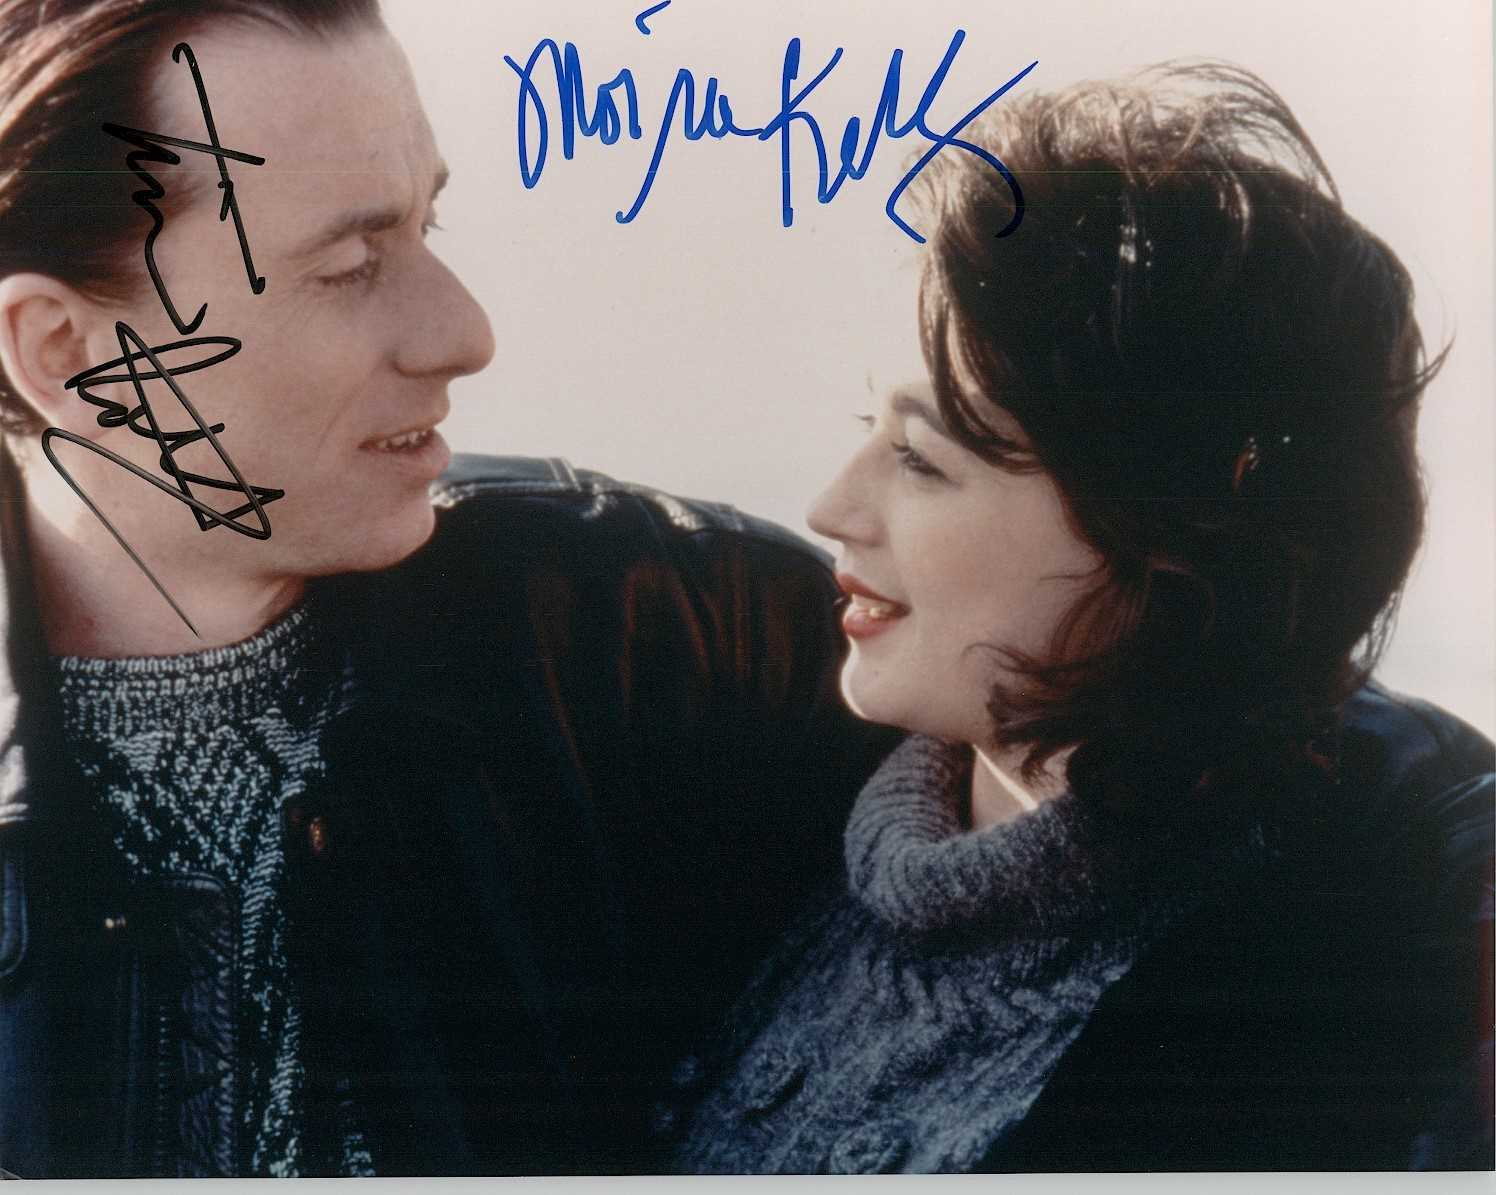 Primary image for Tim Roth & Moira Kelly Signed Autographed Glossy 8x10 Photo